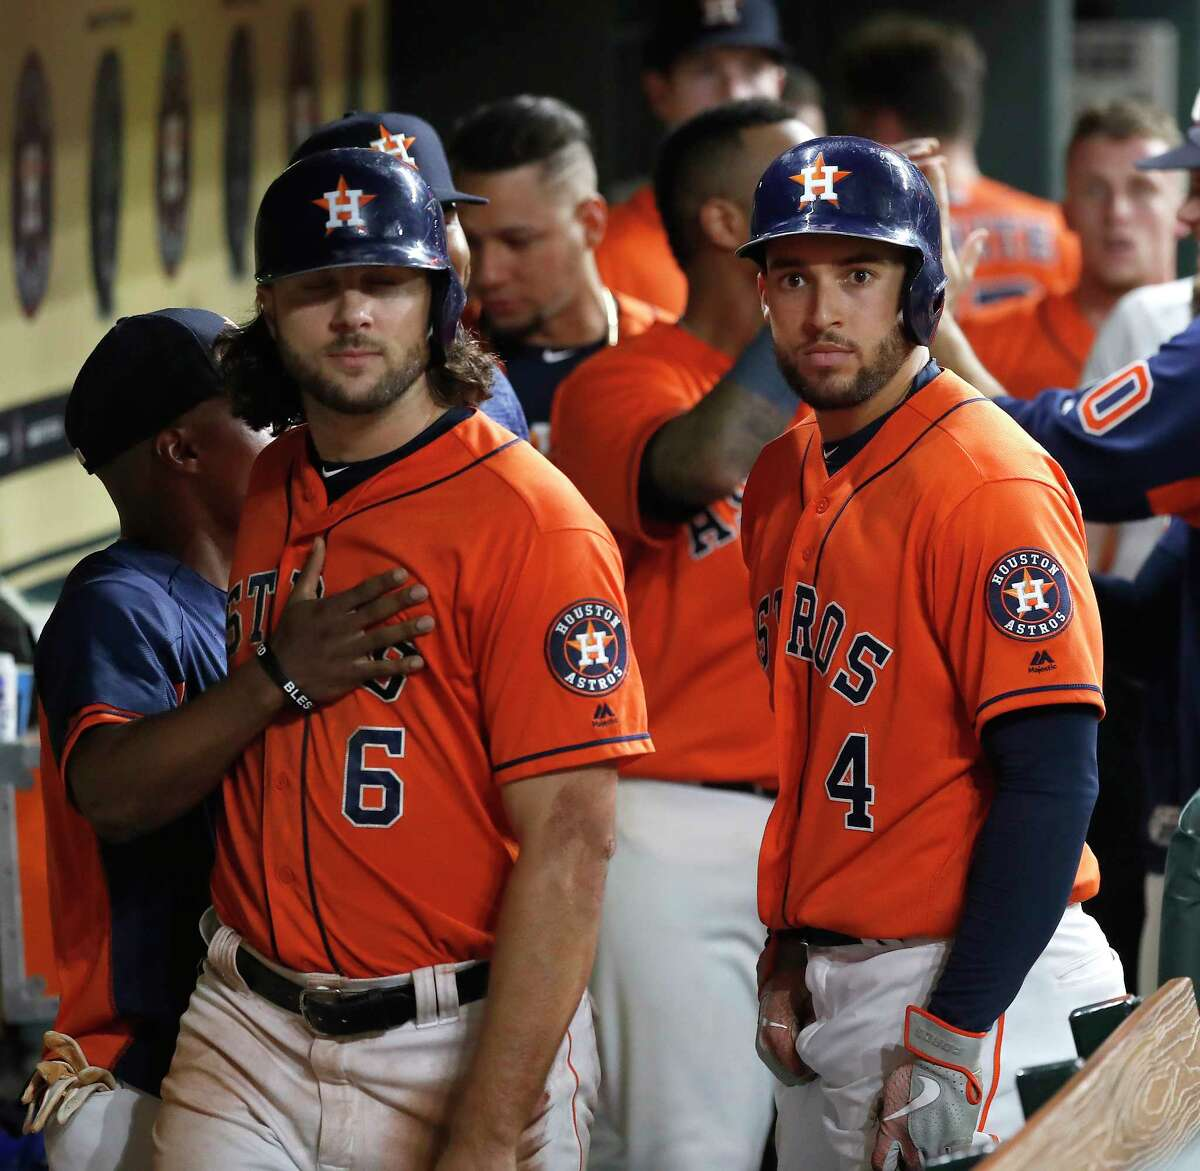 Houston Astros George Springer (4) celebrates his three-run home run with a dugout stare during the eighth inning of an MLB baseball game at Minute Maid Park, Friday, September 21, 2018, in Houston.